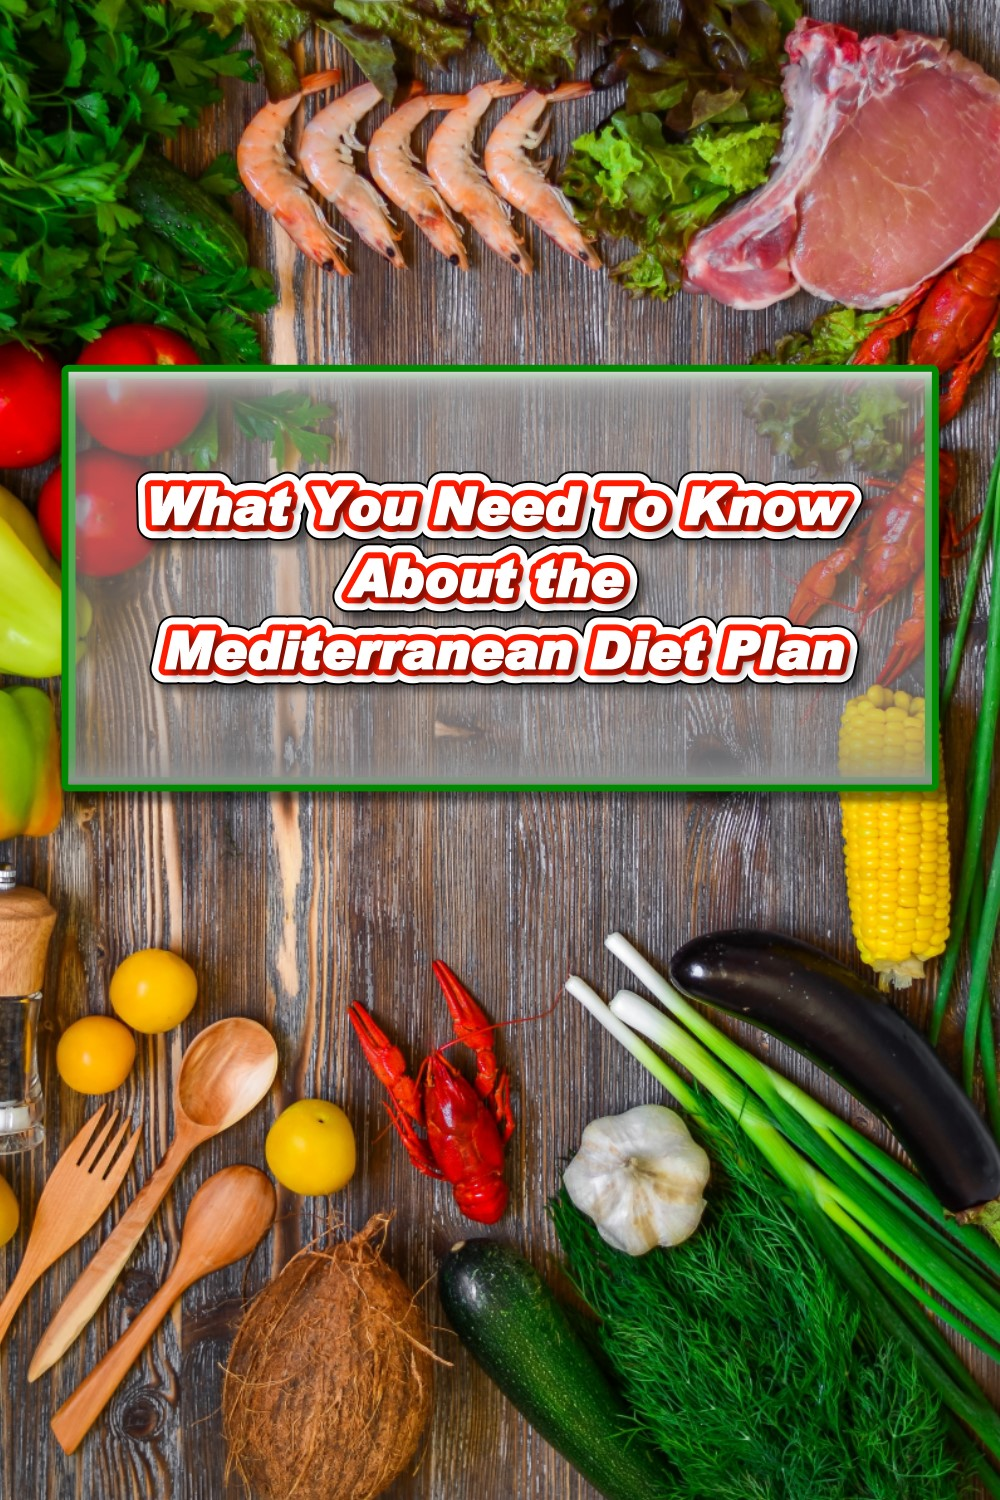 What You Need To Know About the Mediterranean Diet Plan